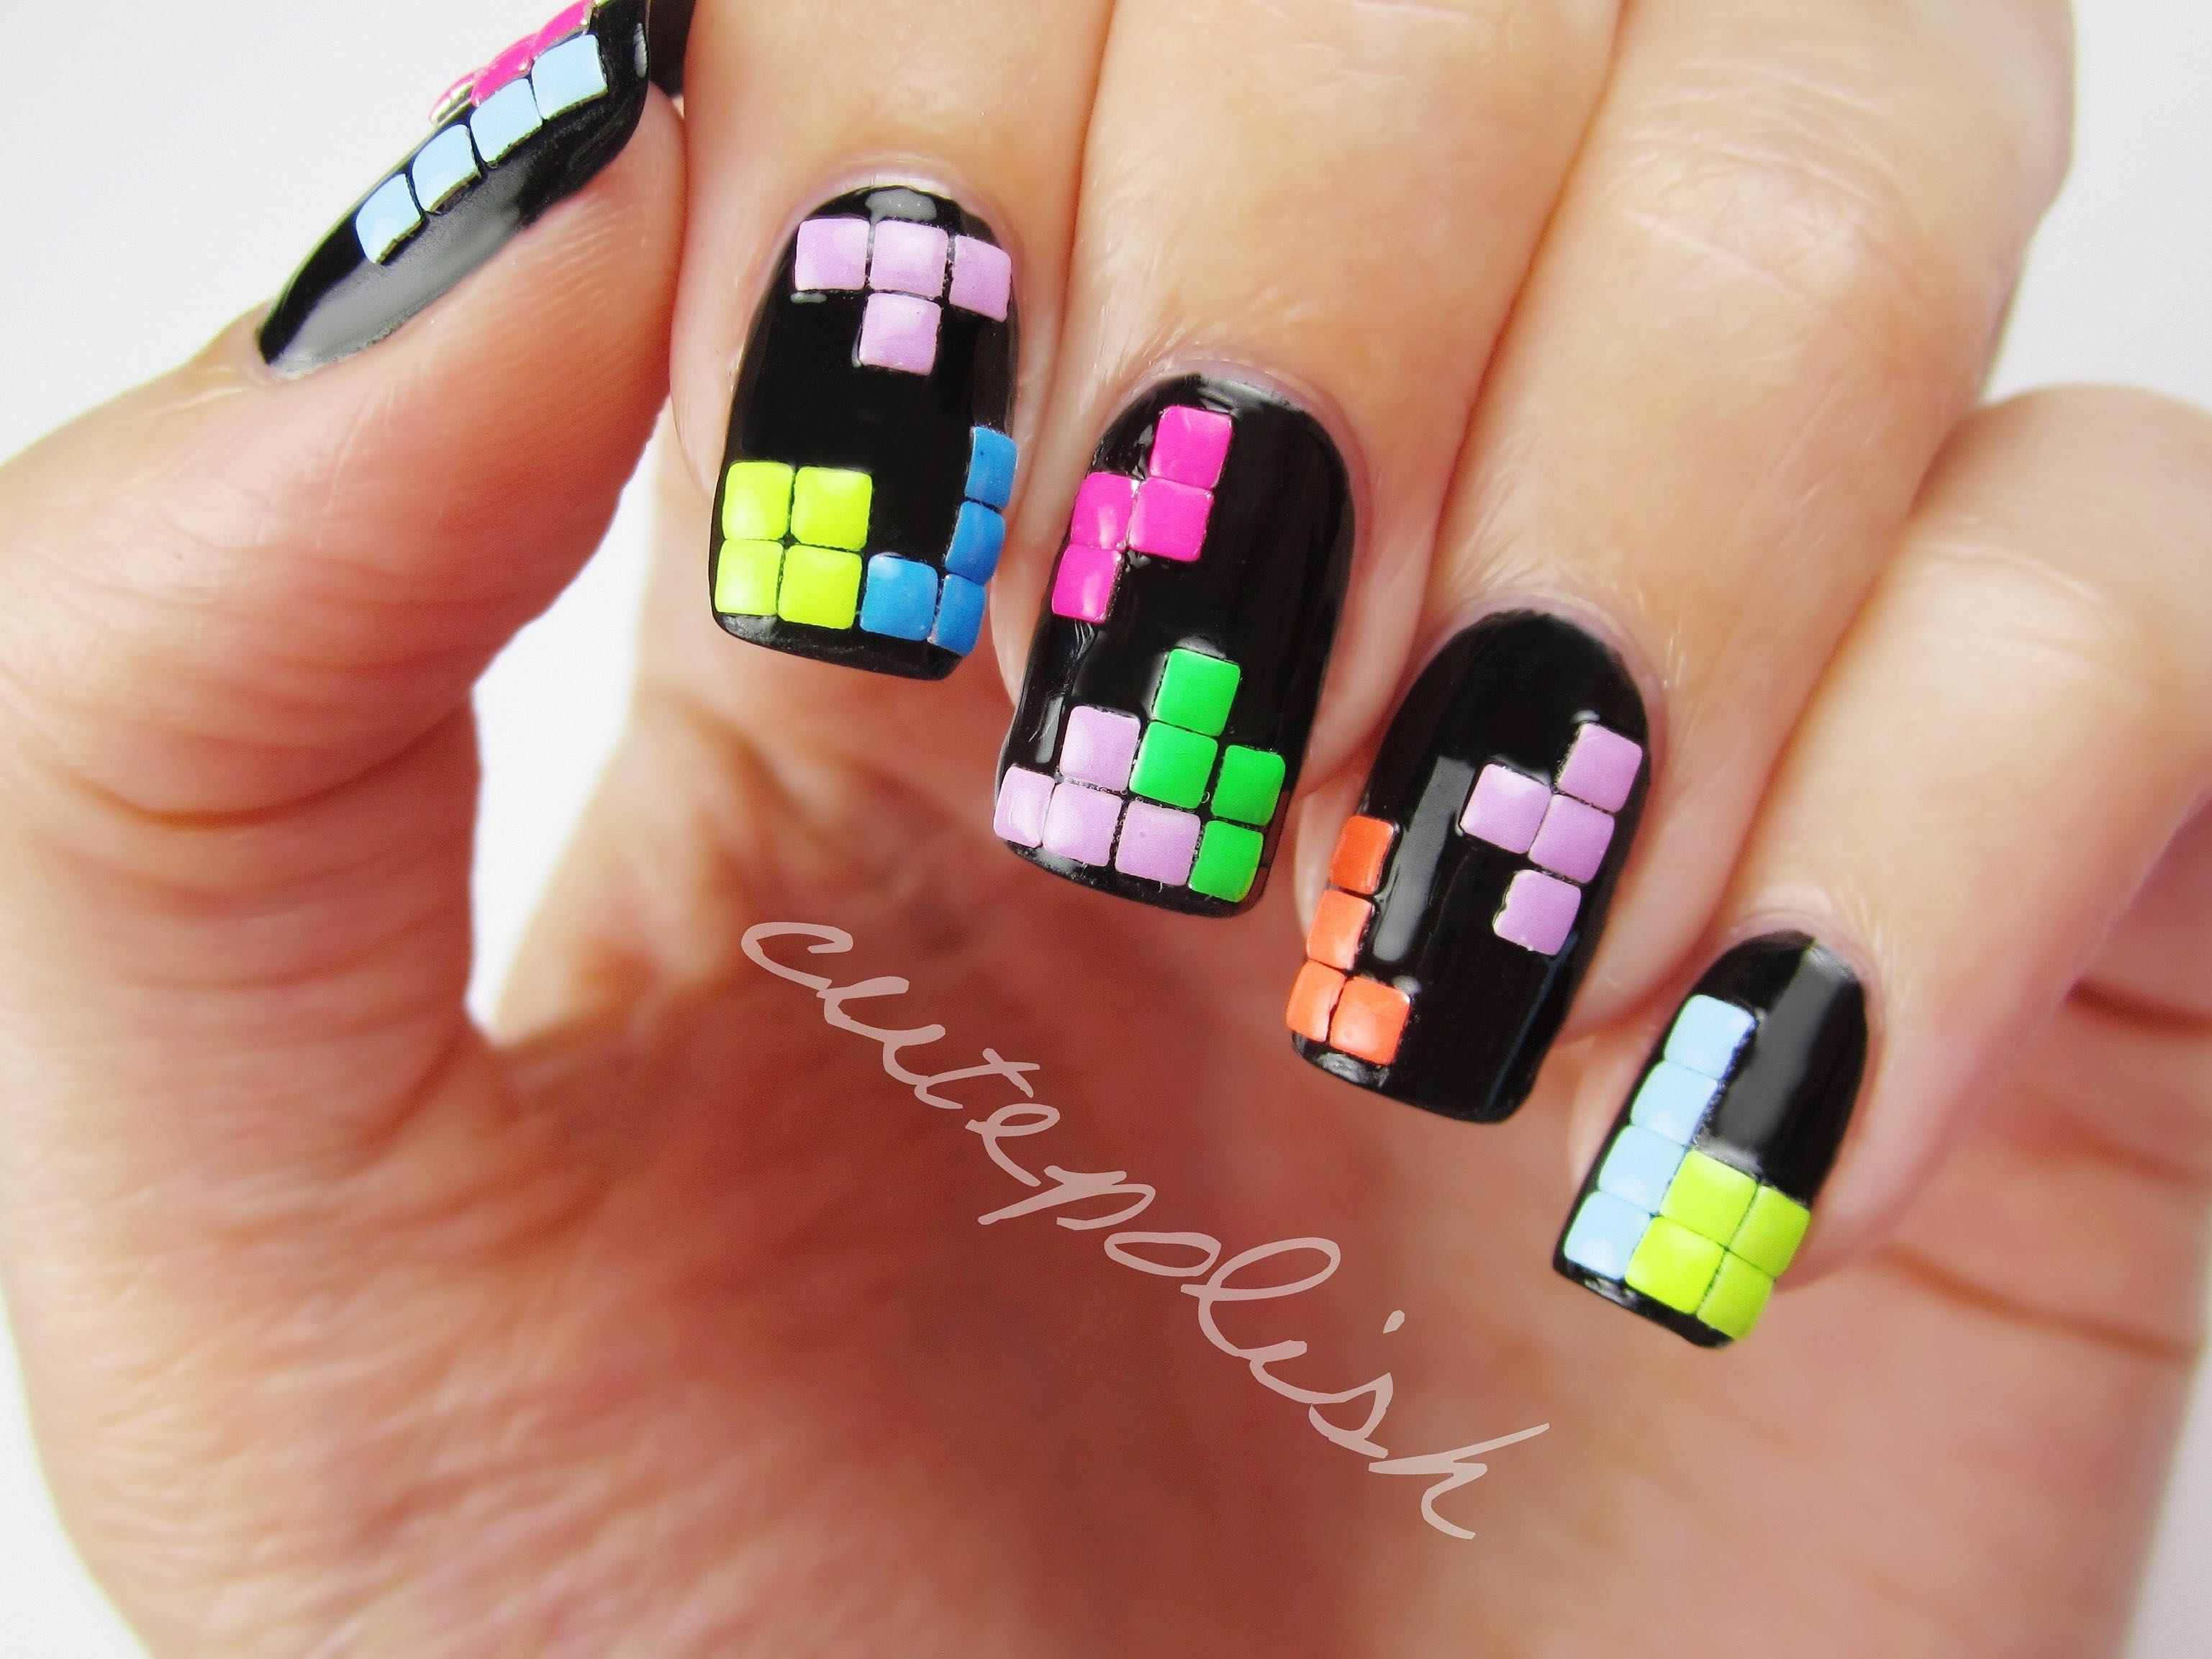 Cool Gaming Inspired Nail Art - Wow Gallery | eBaum\'s World